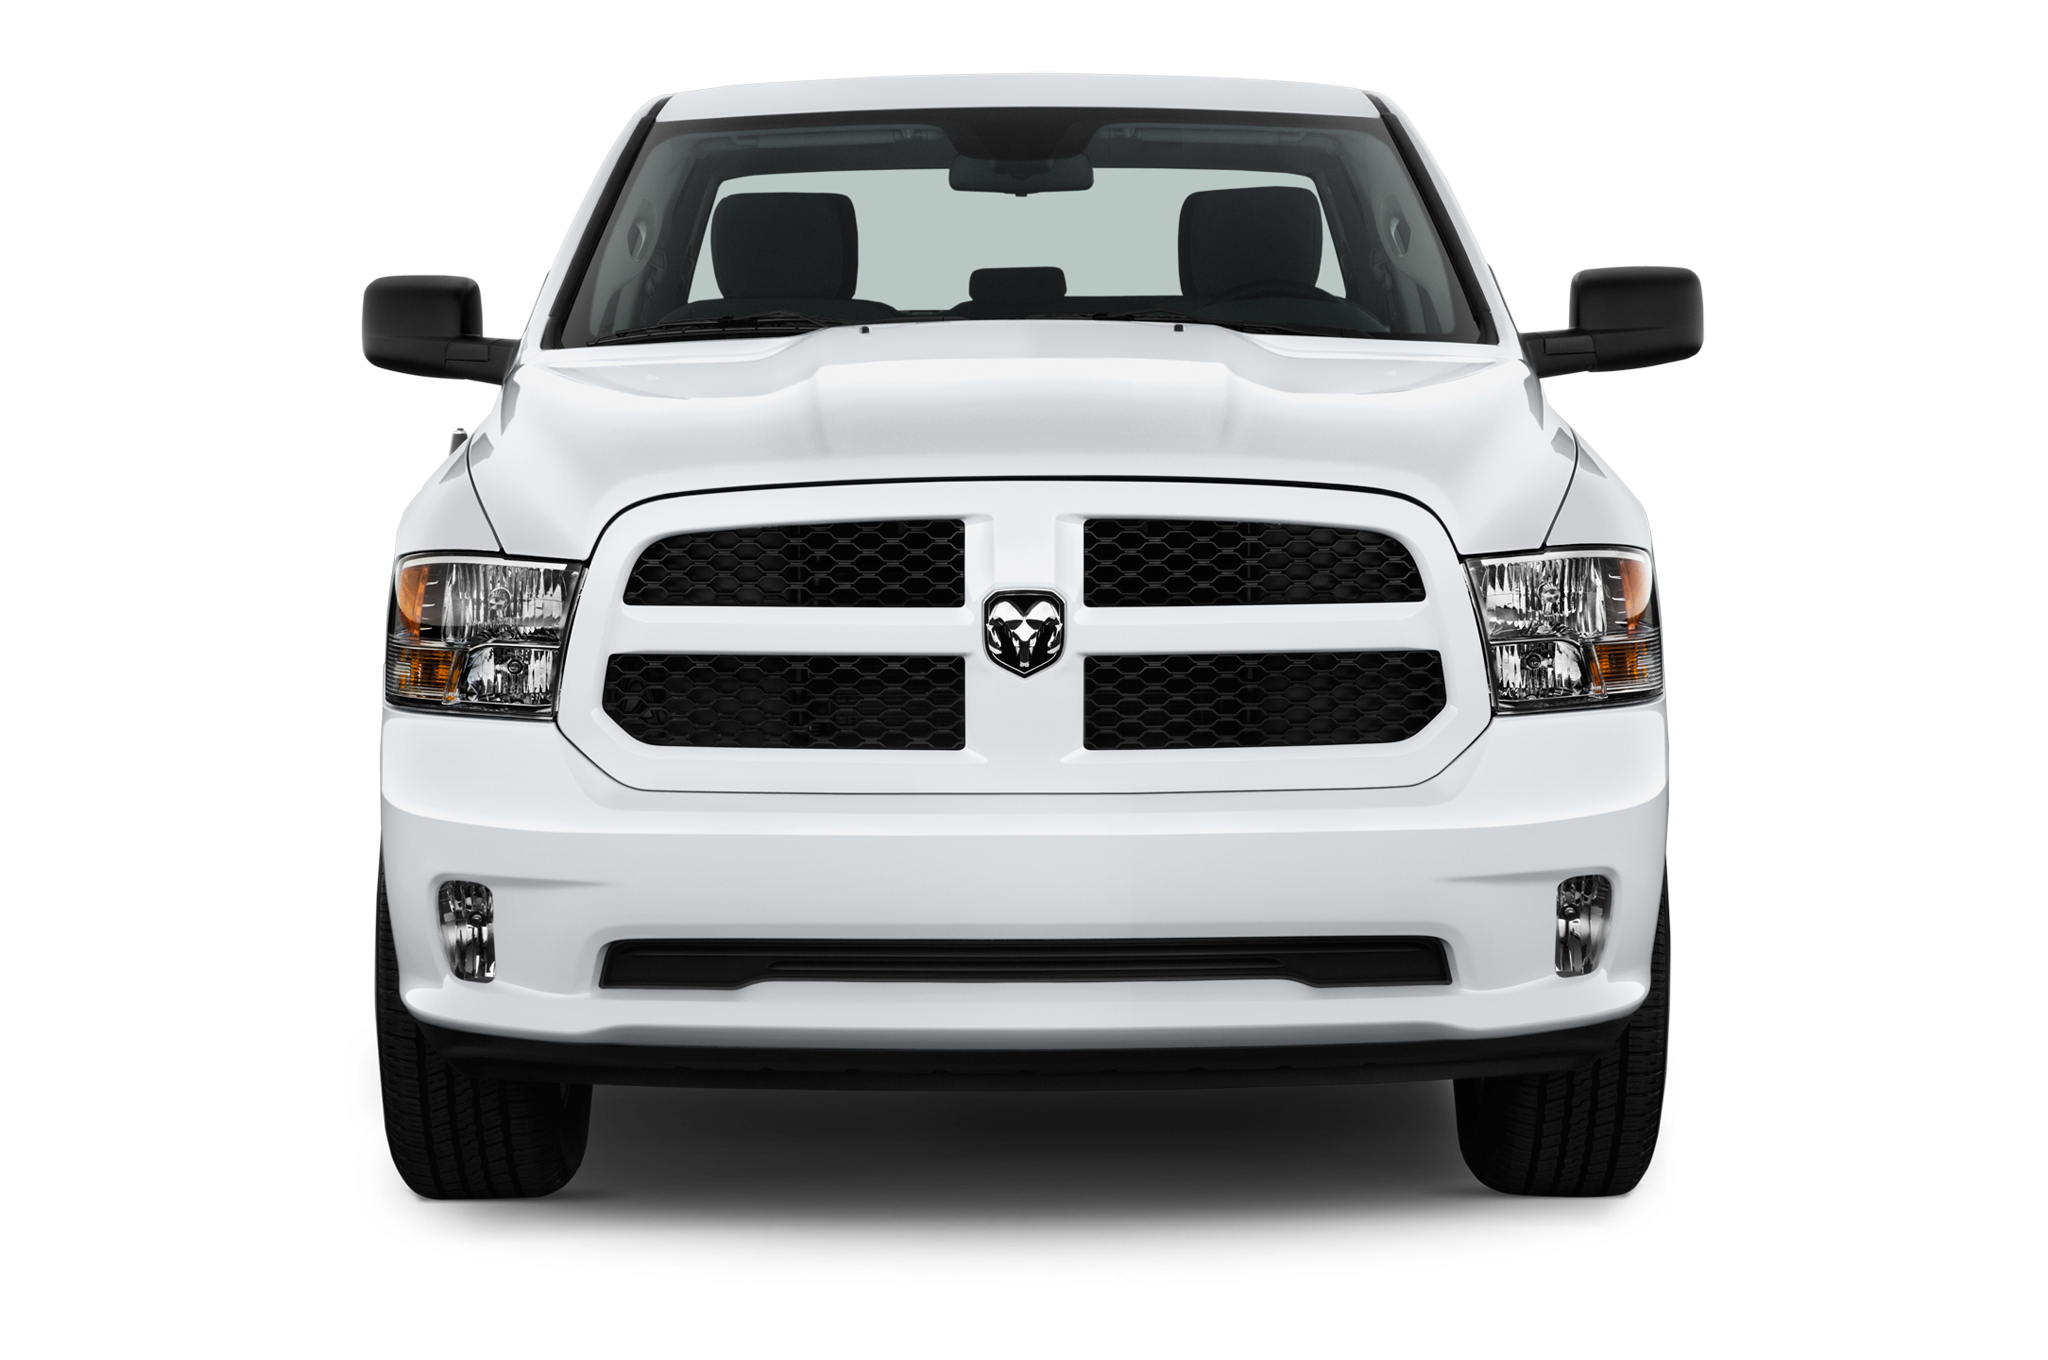 2017 Ram 1500 Rebel Black Arriving for Spring Ski Season